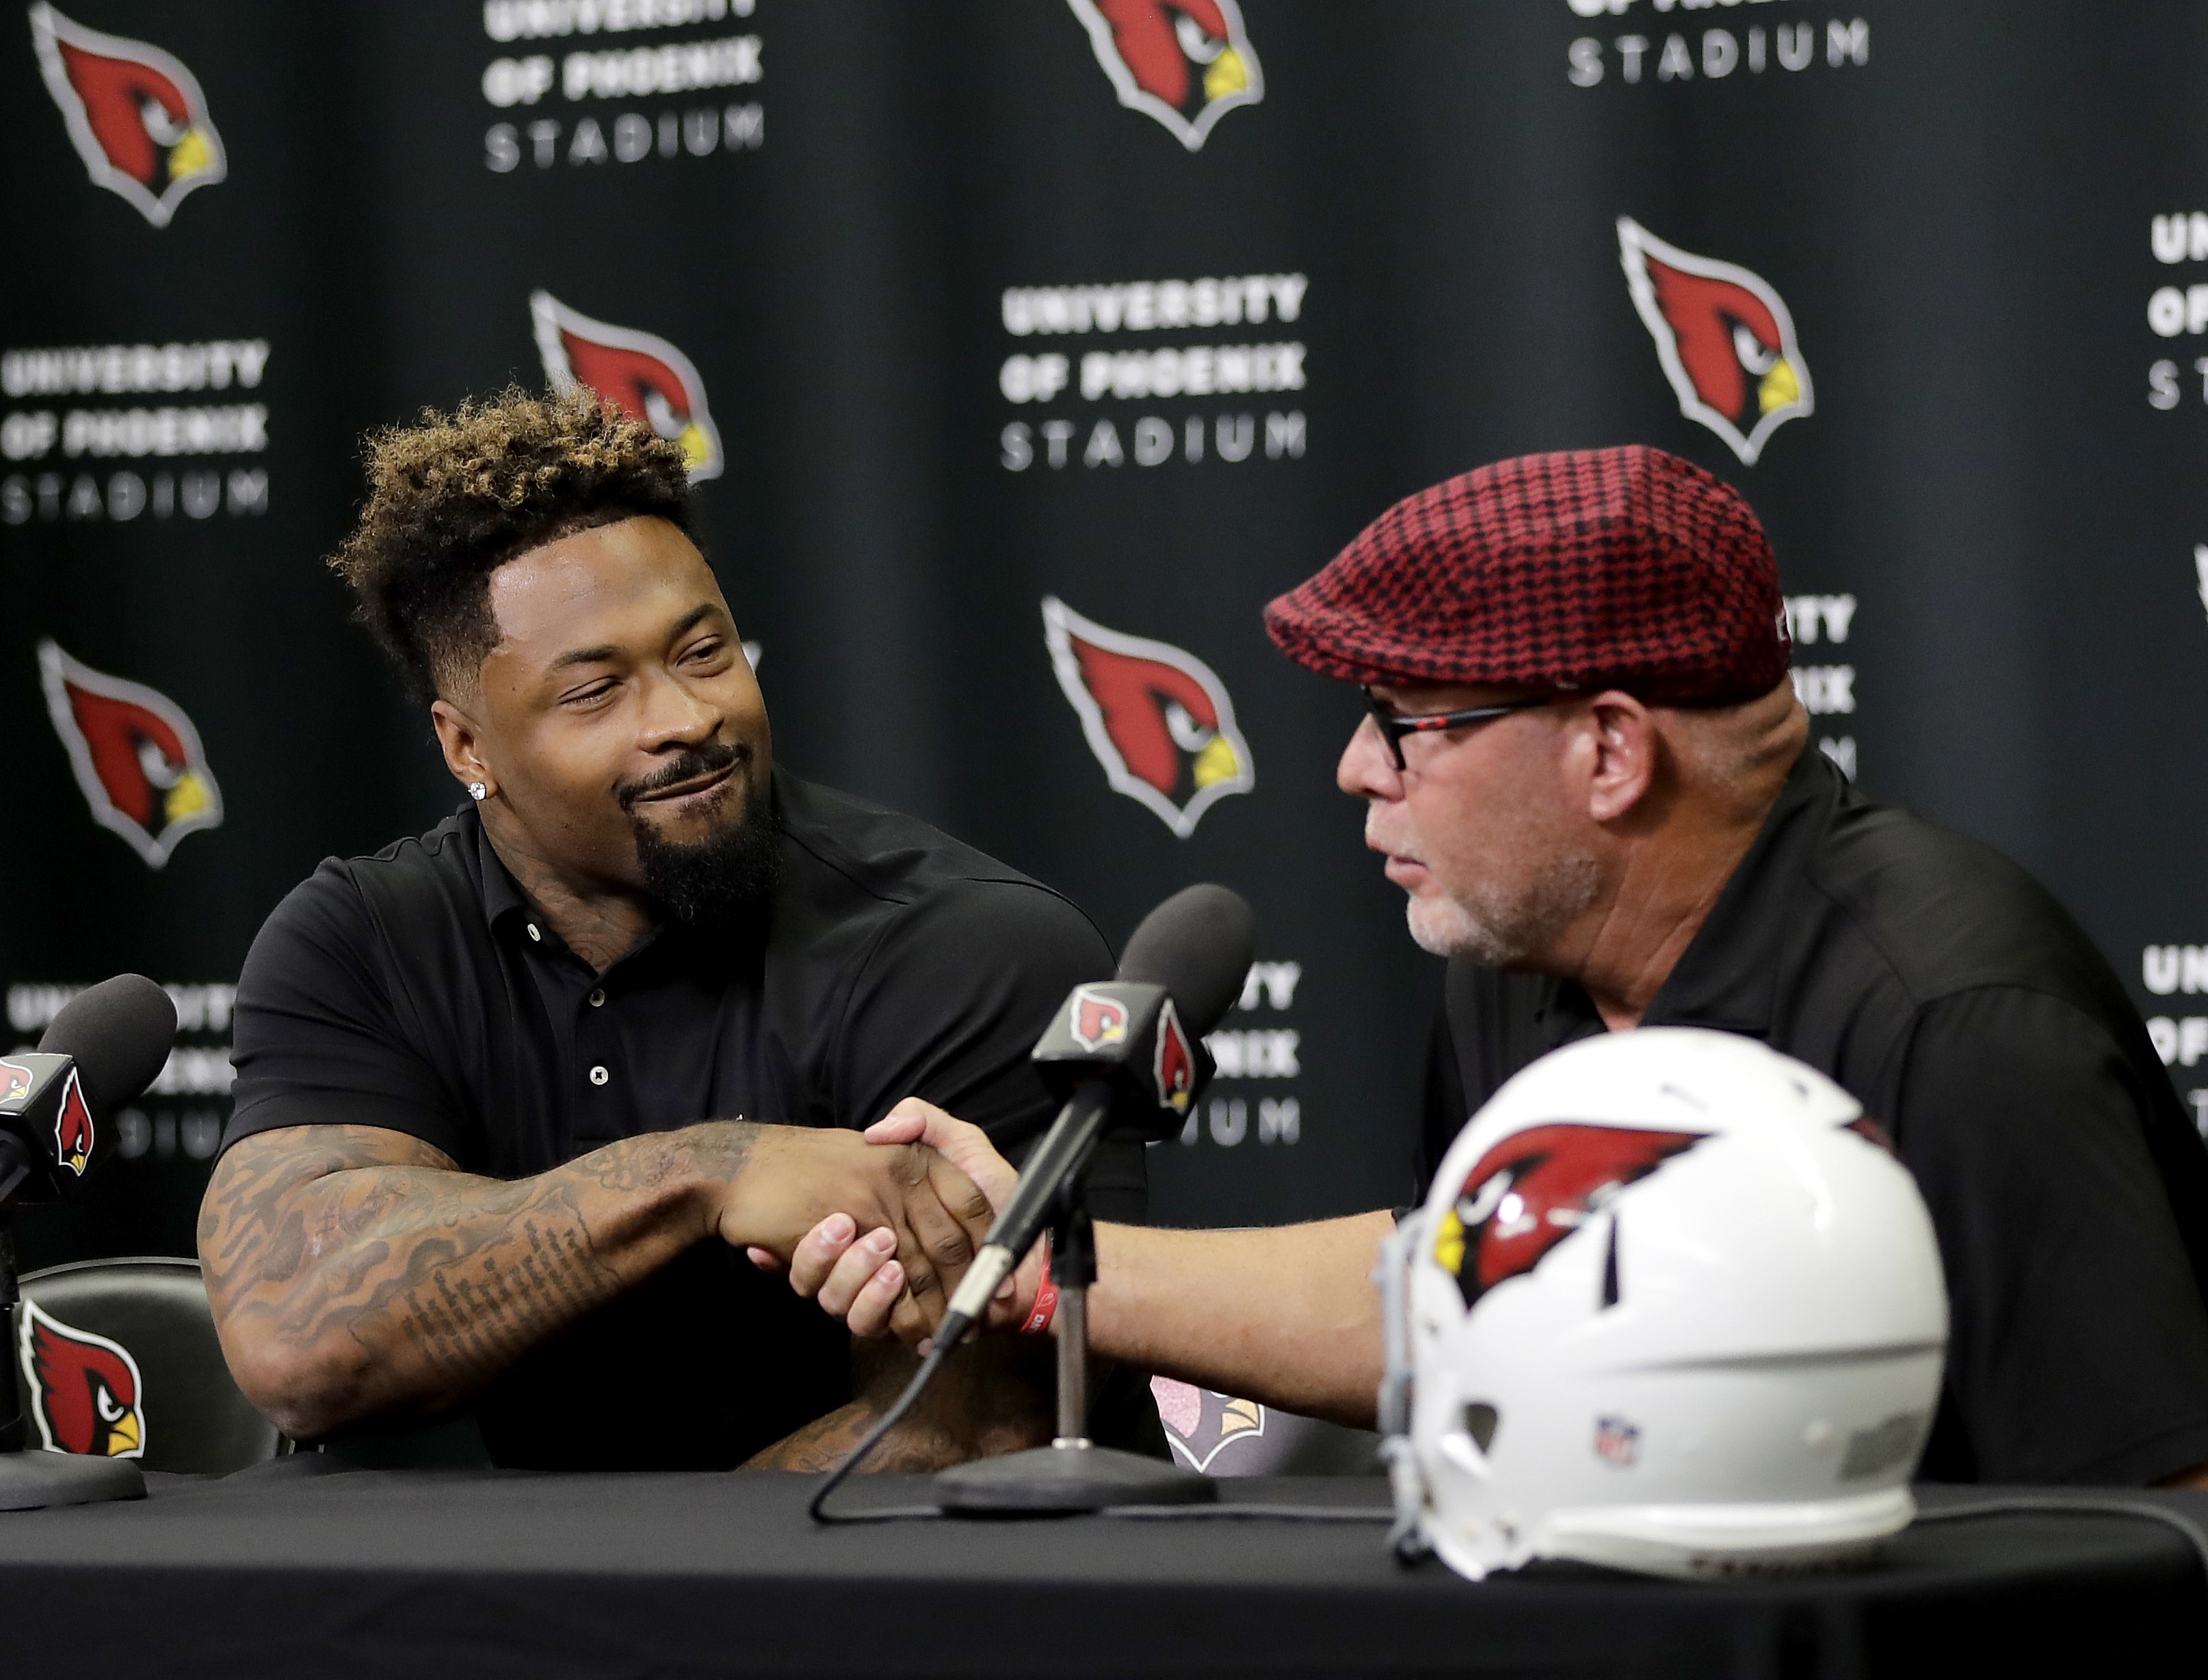 Darnell Dockett shakes hands with head coach Bruce Arians, right, after signing a contract with the Arizona Cardinals, Monday, July 25, 2016, in Tempe, Ariz. Dockett, who spent 11 seasons in Arizona, signed a one-day contract so he could retire as a Cardi